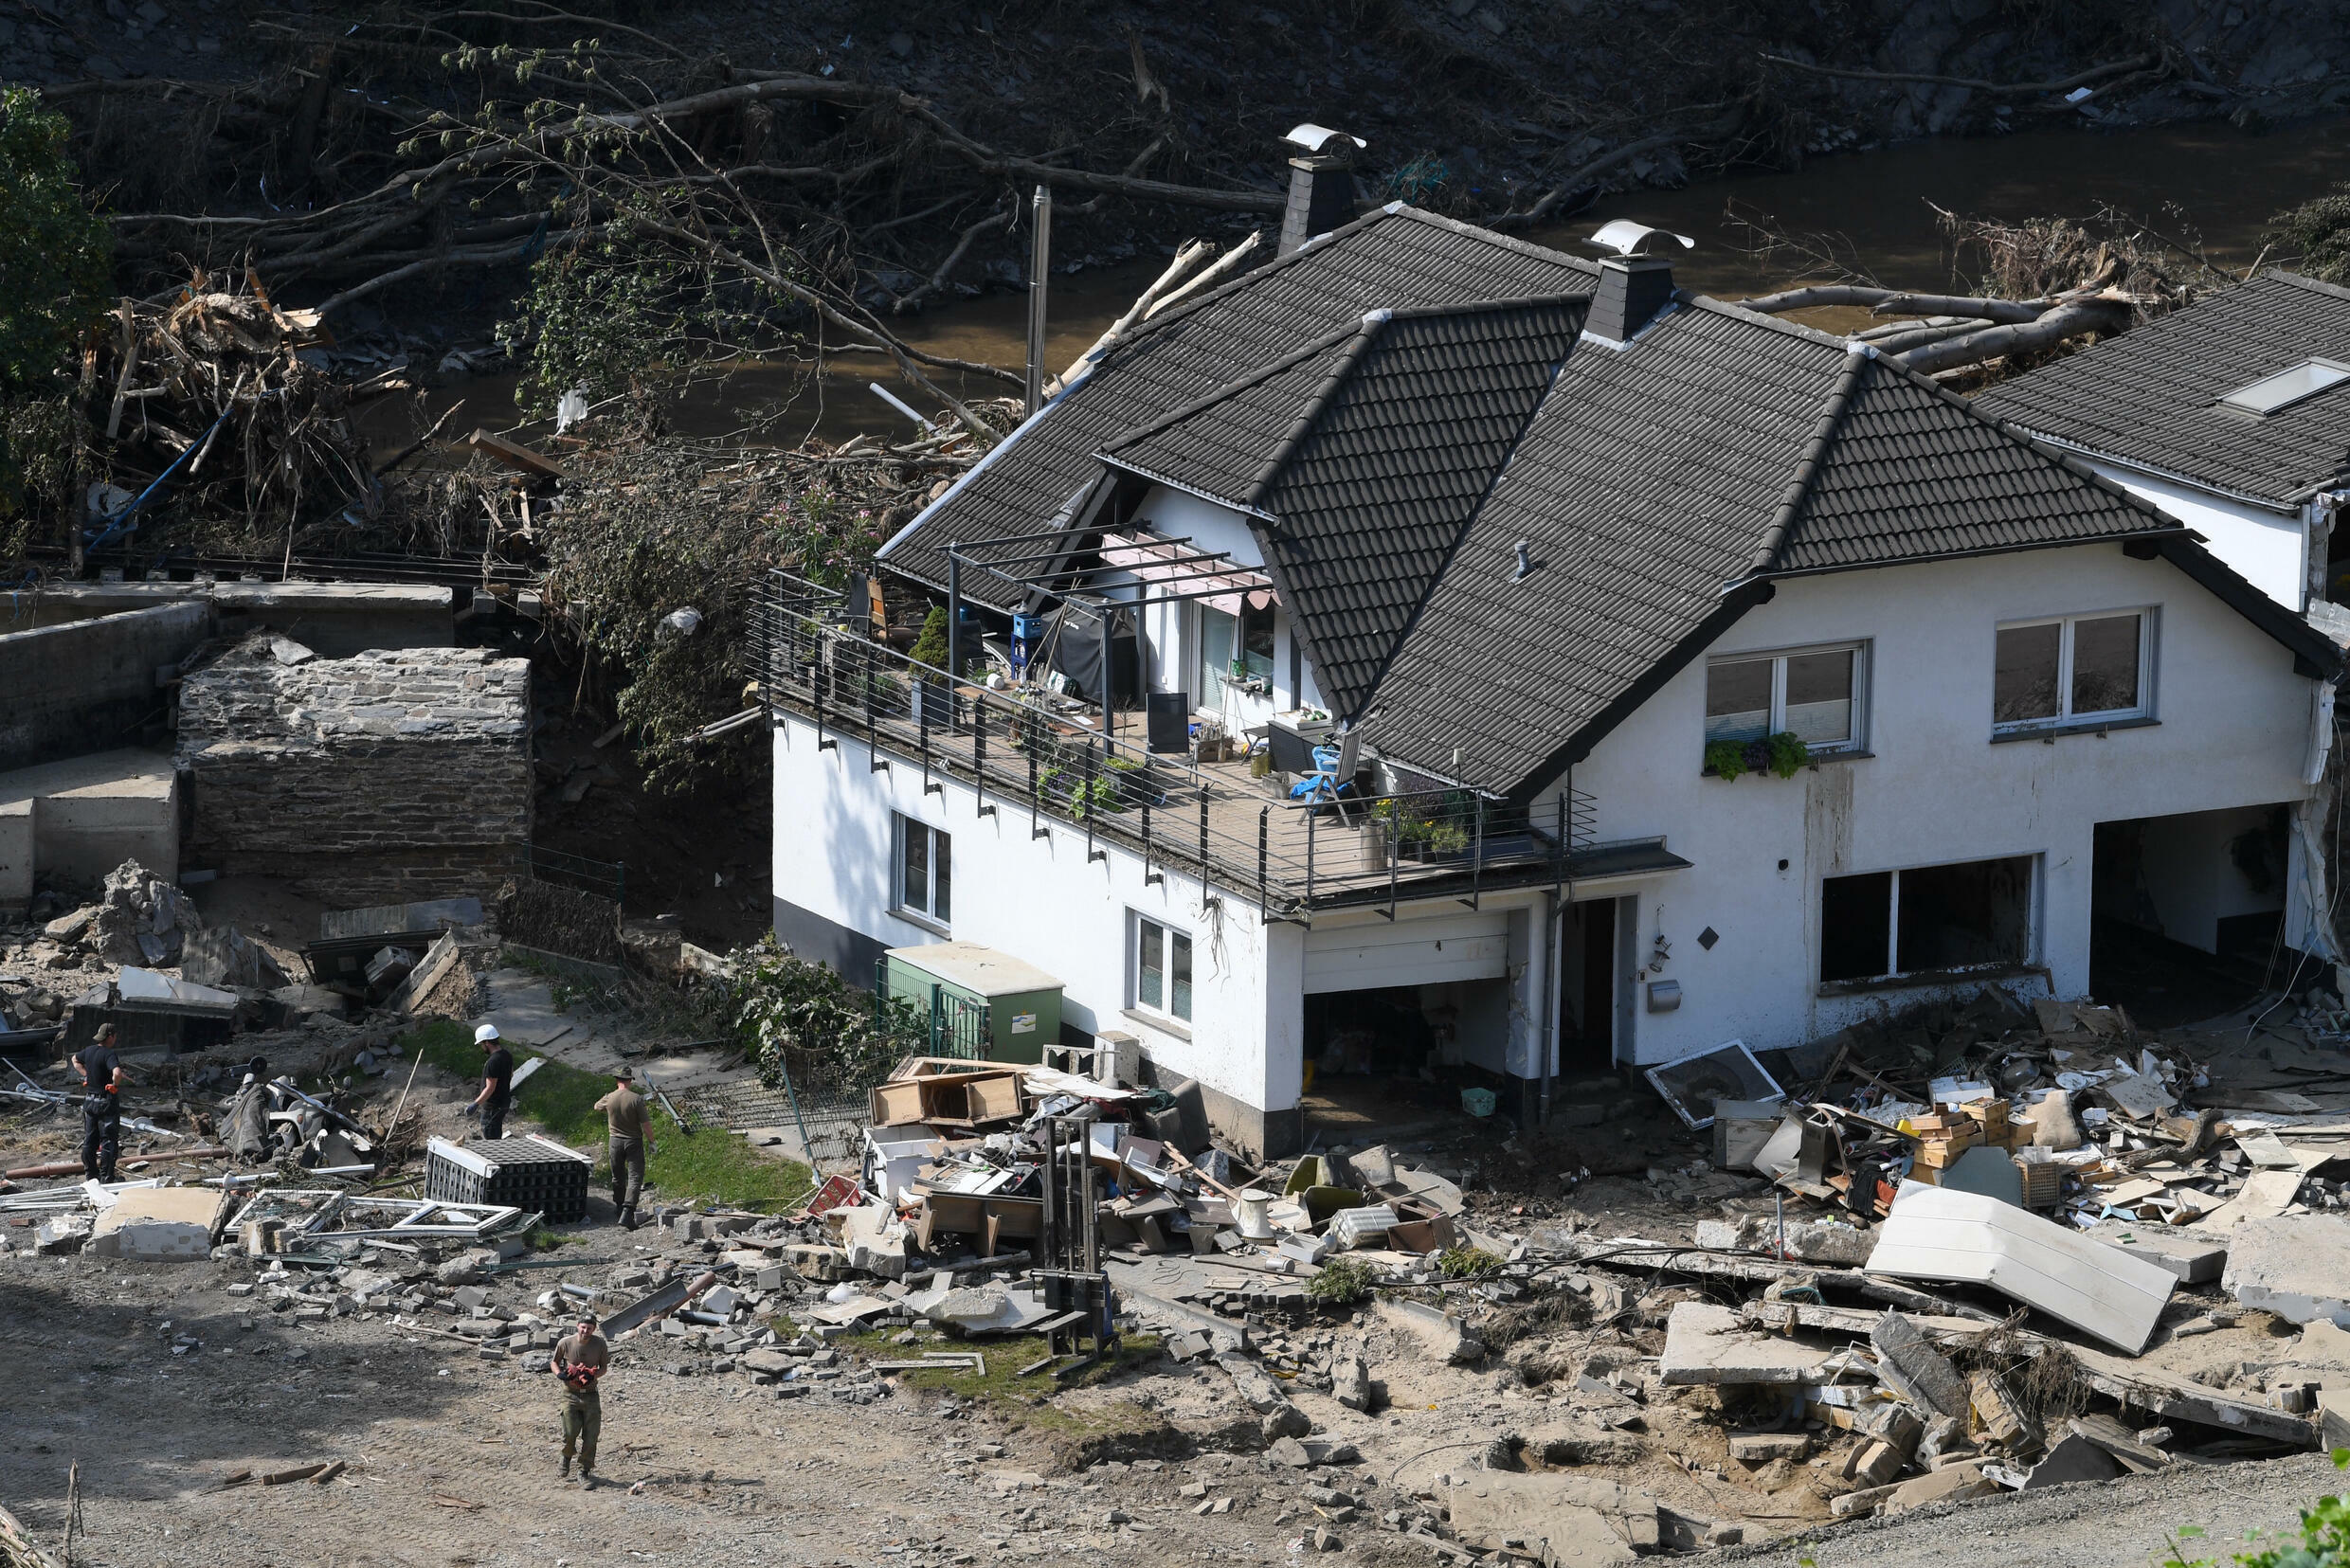 Workers on Thursday clear around a damaged home in Marienthal, in the Bad Neuenahr-Ahrweiler distict of western Germany, more than week after deadly floods struck the region